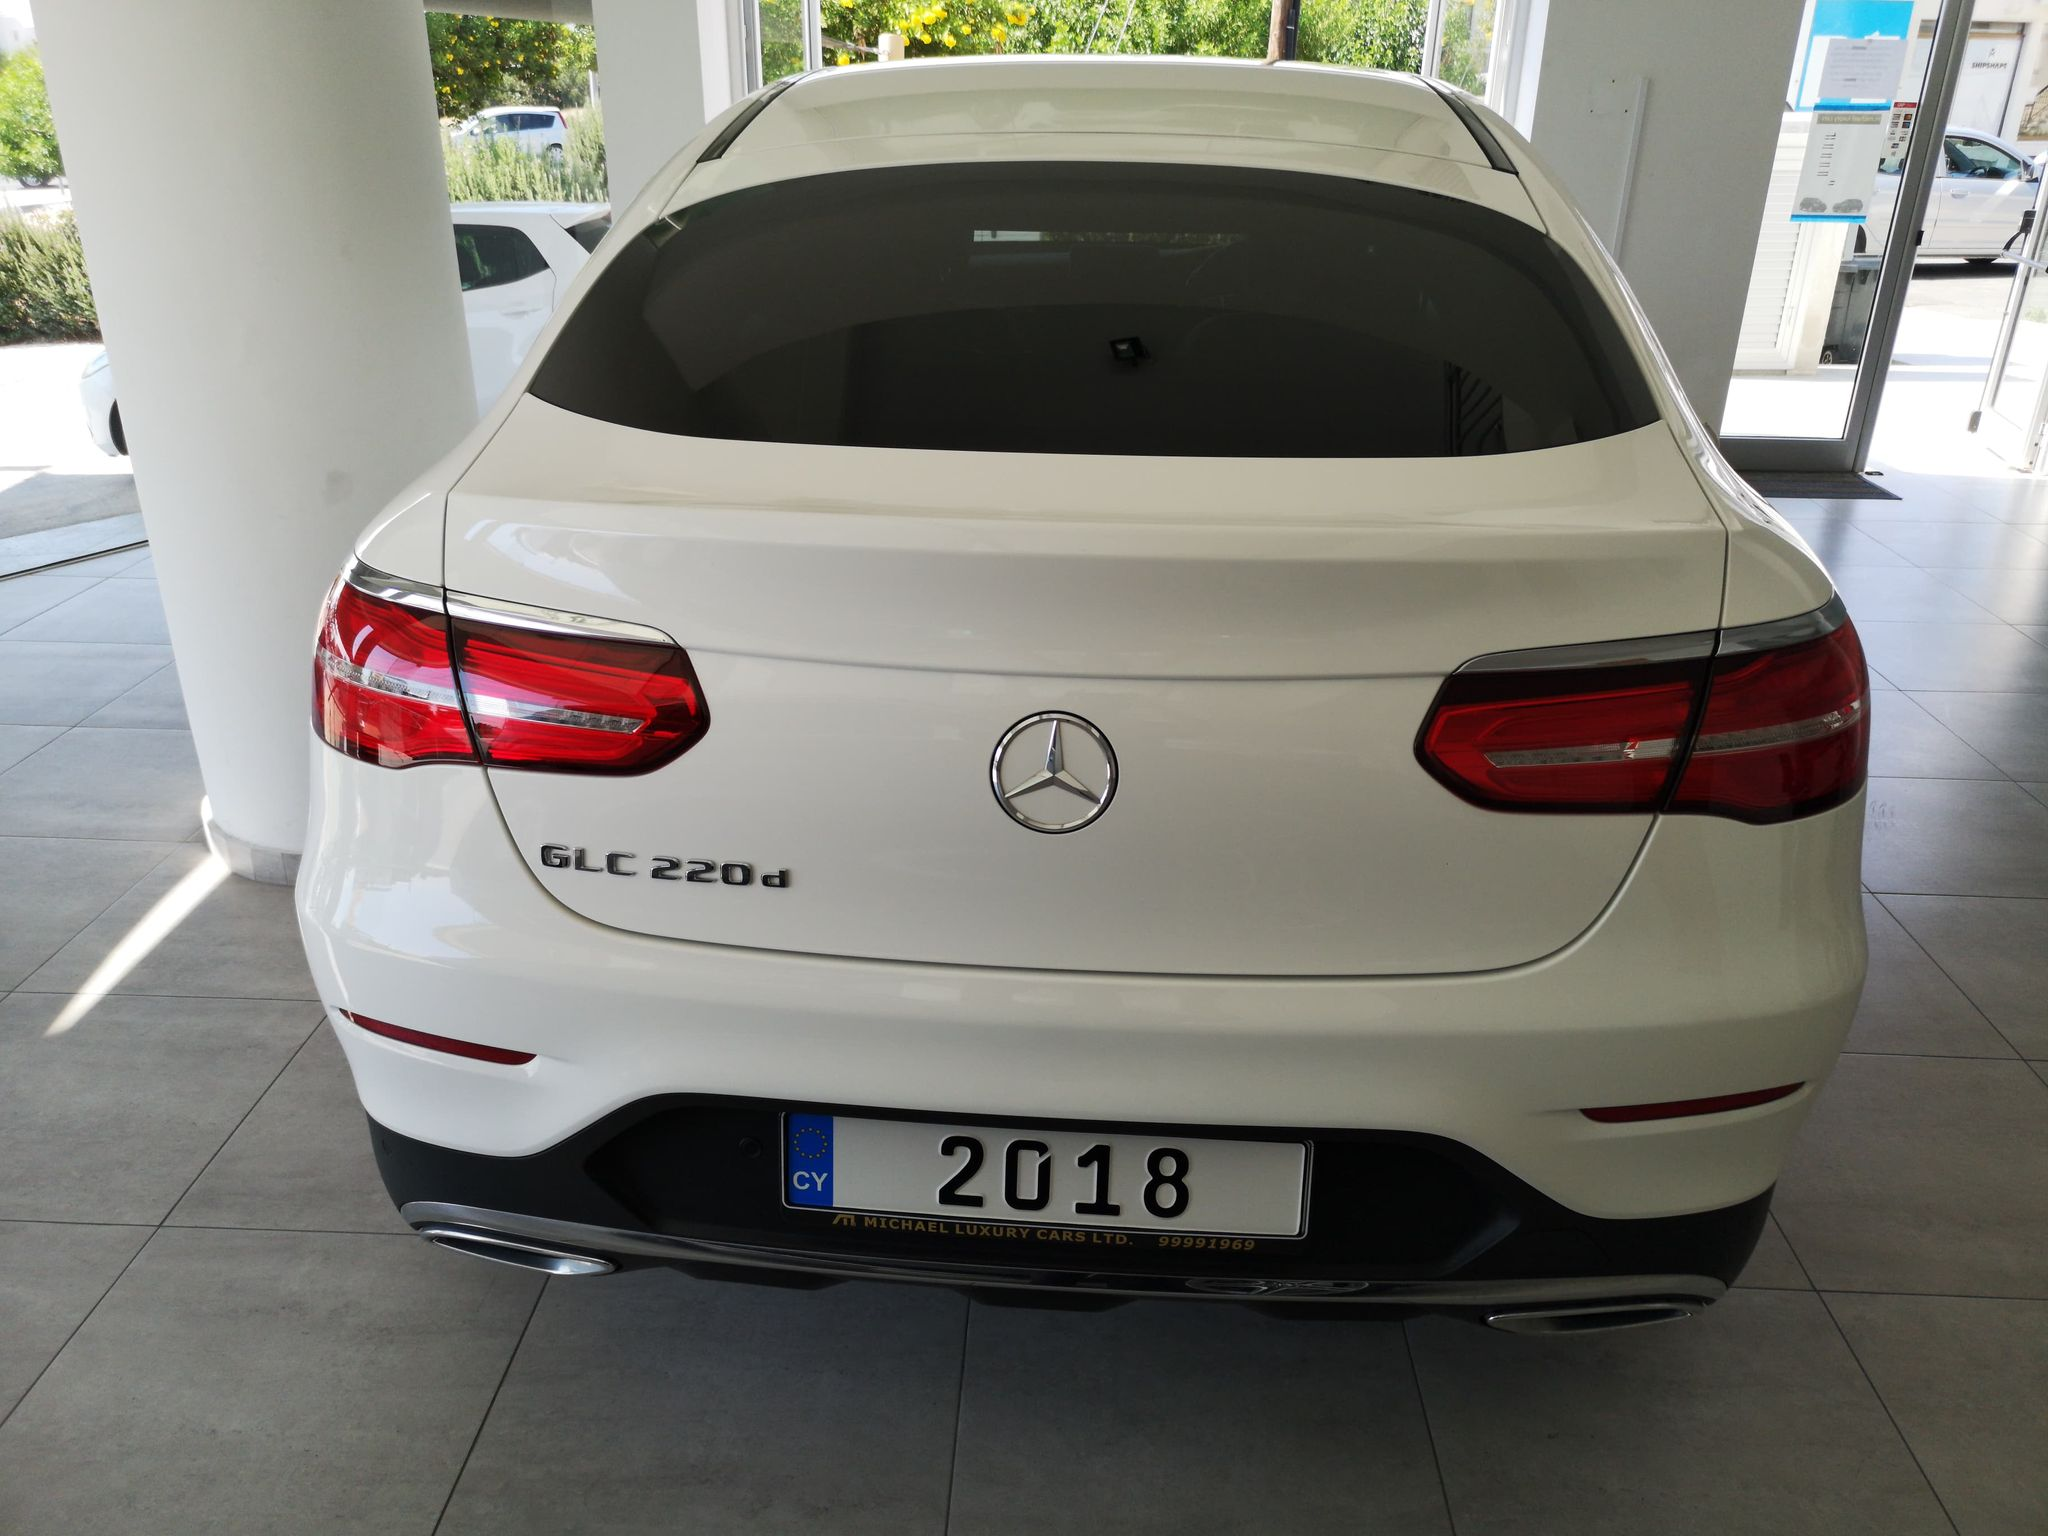 Mercedes GLC 220D AMG 4 MATIC